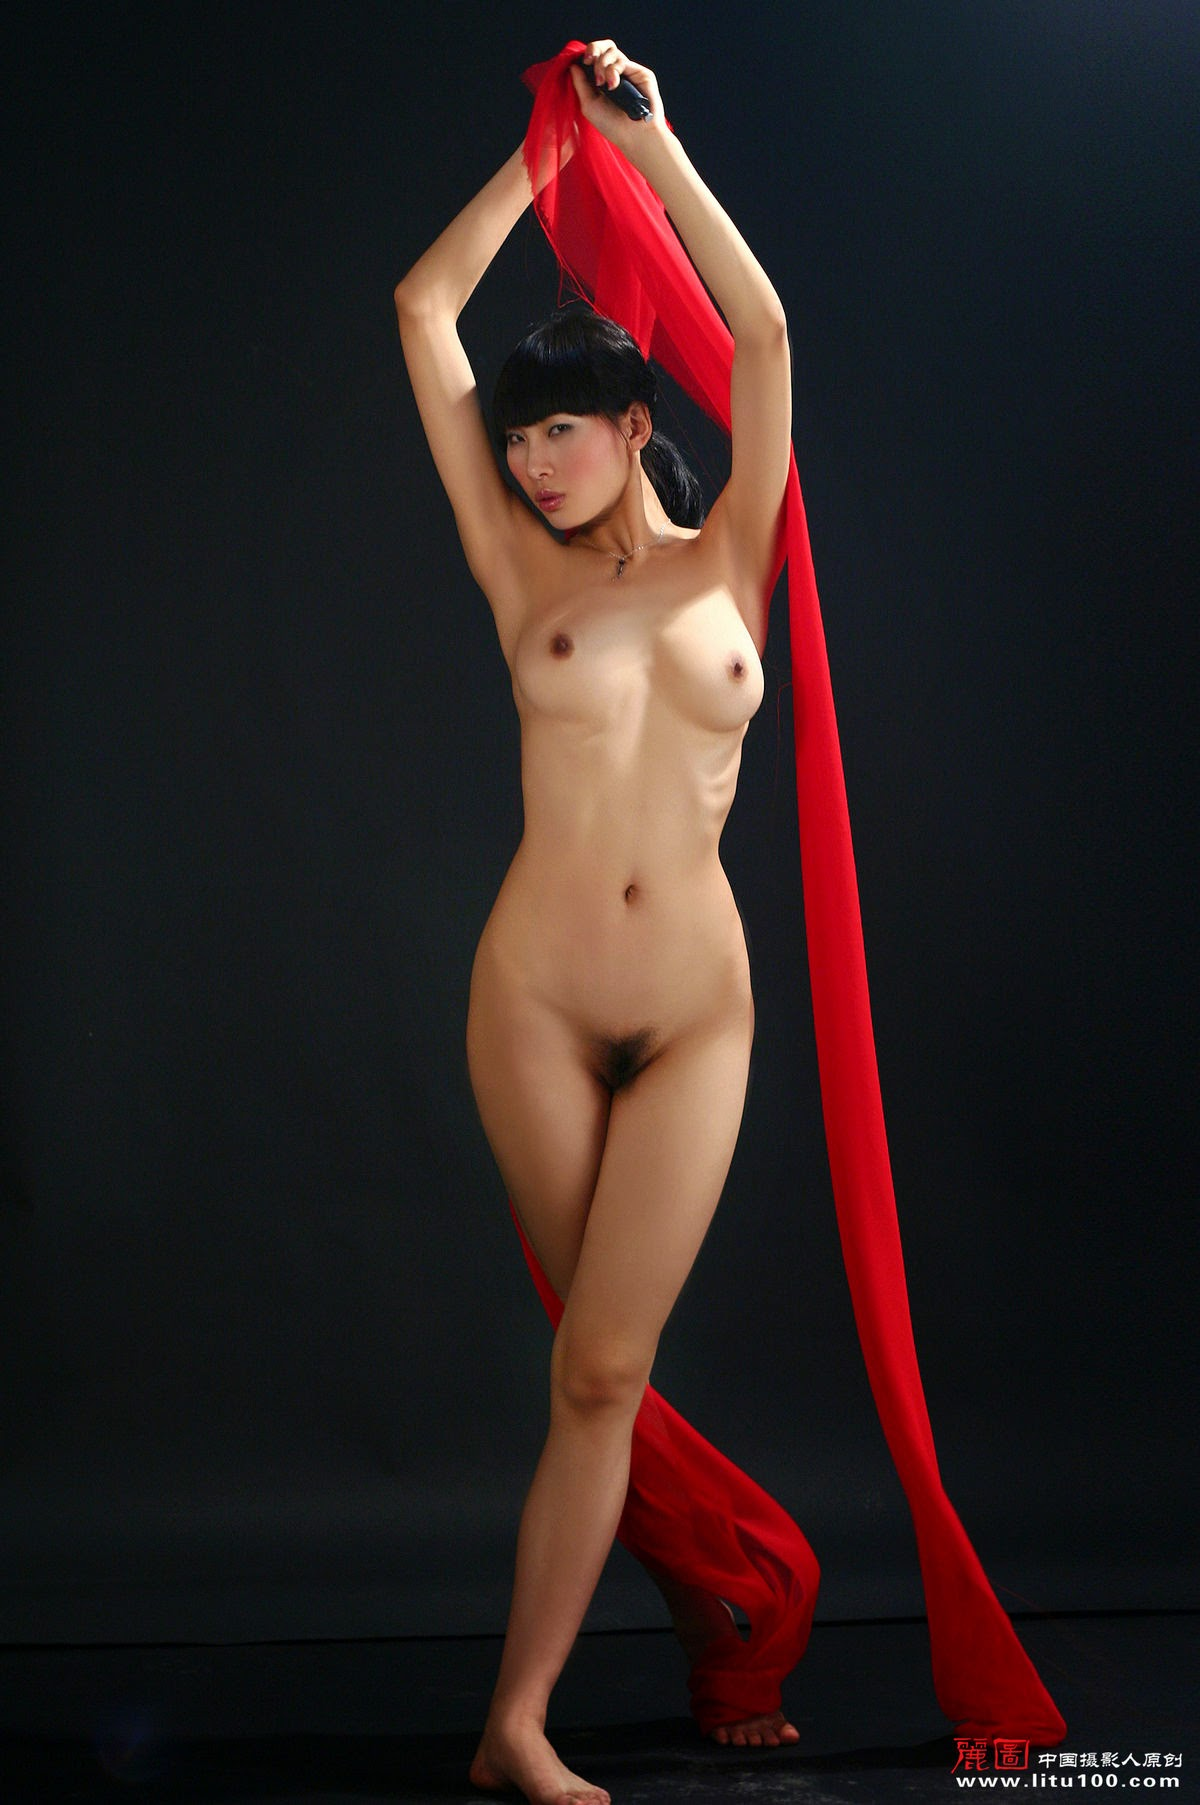 litu 100 archives: Chinese Nude Model  Wei Wei  02 [Litu100]  | chinesenudeart photos